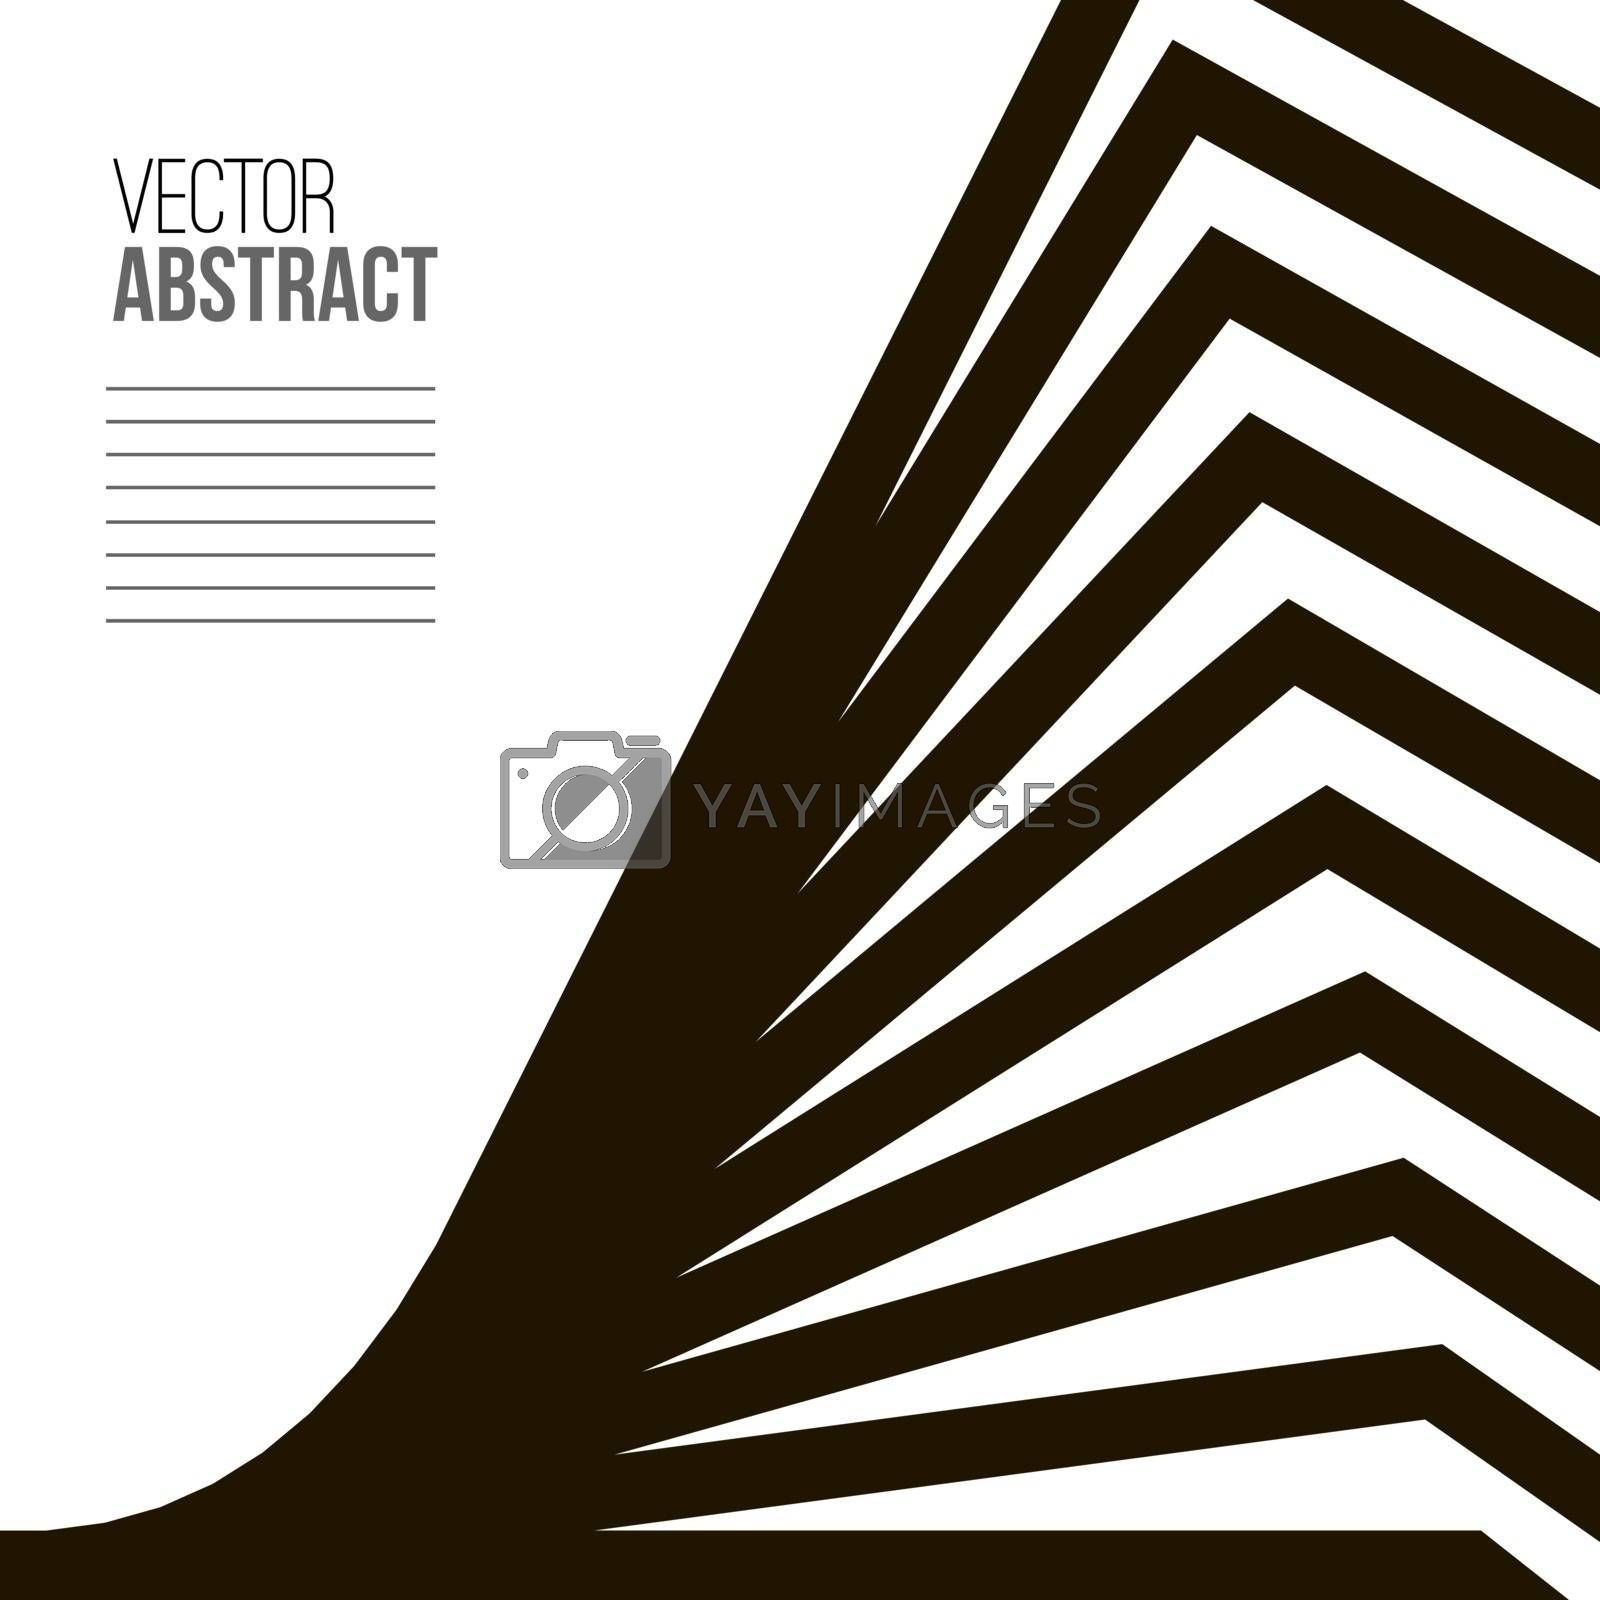 Abstract building with perspective. Architecture book cover.